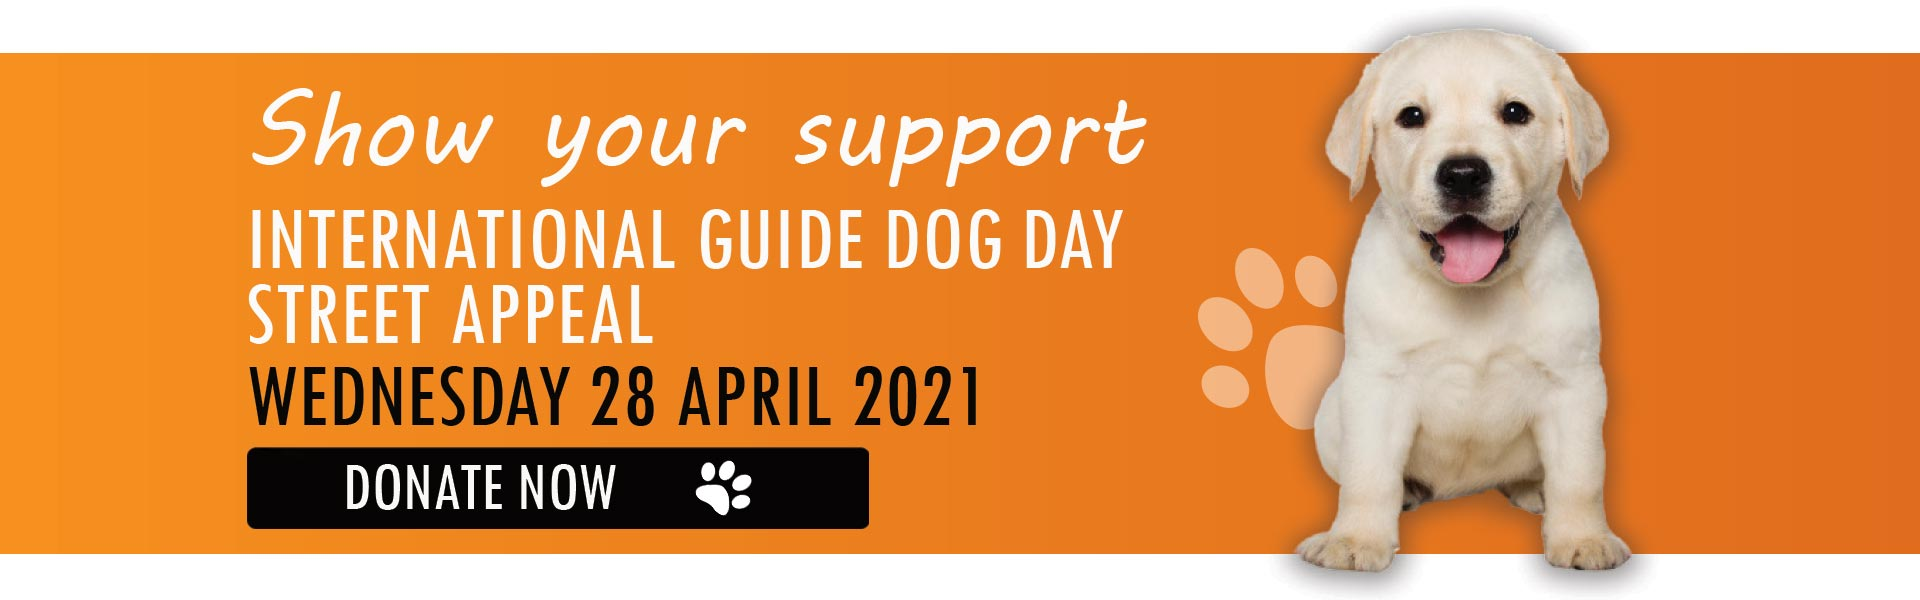 Yellow labrador puppy faces the camera. Text reads: Show your support. International Guide Dog Day Street Appeal, Wednesday 28 April 2021. Donate Now